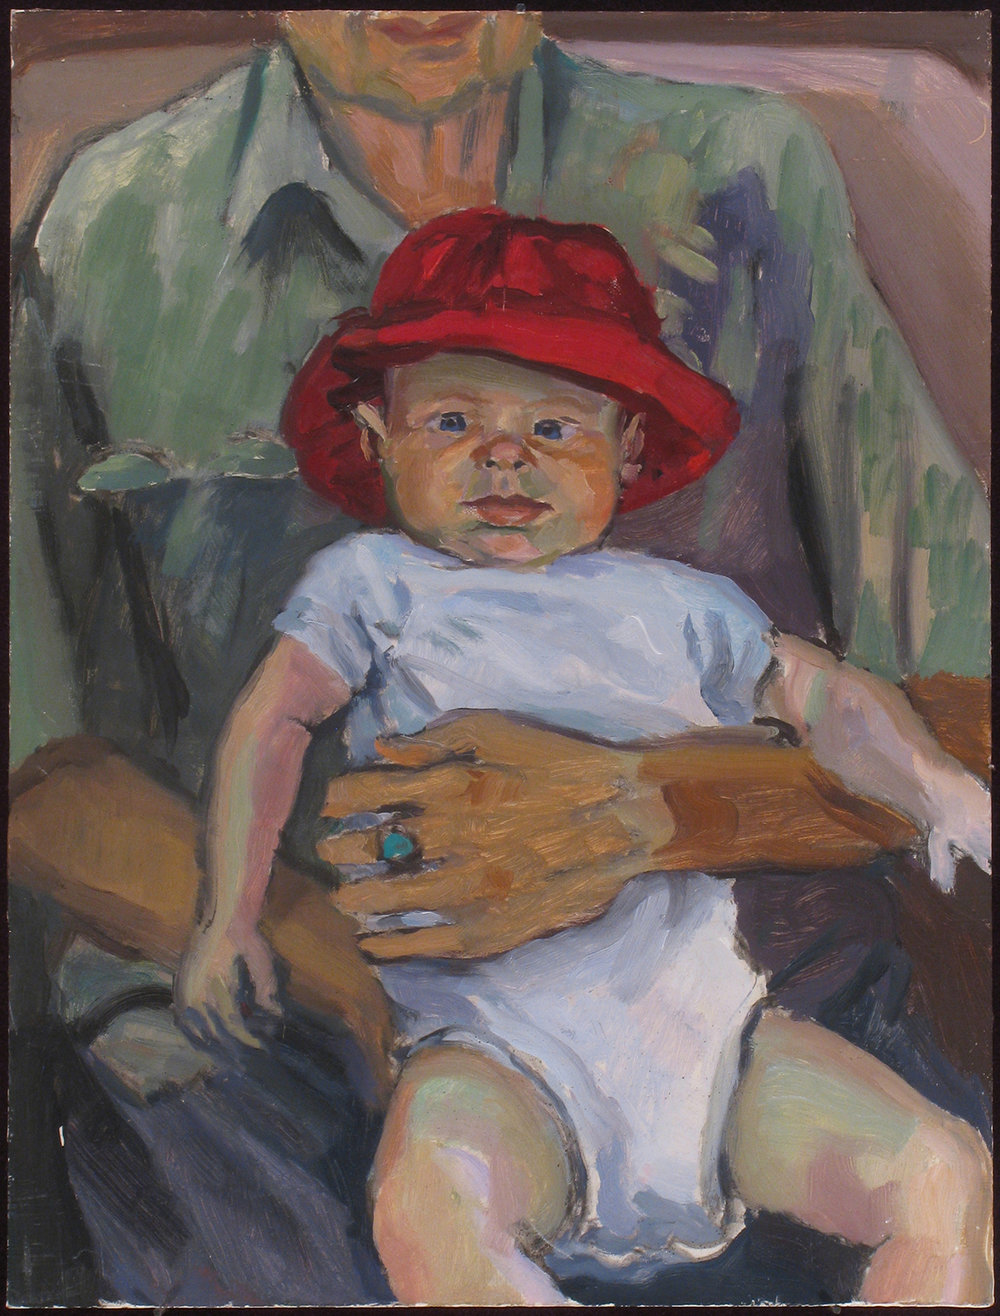 "ADRIAN WITH RED HAT oil on panel 12 x 9"" 2006"